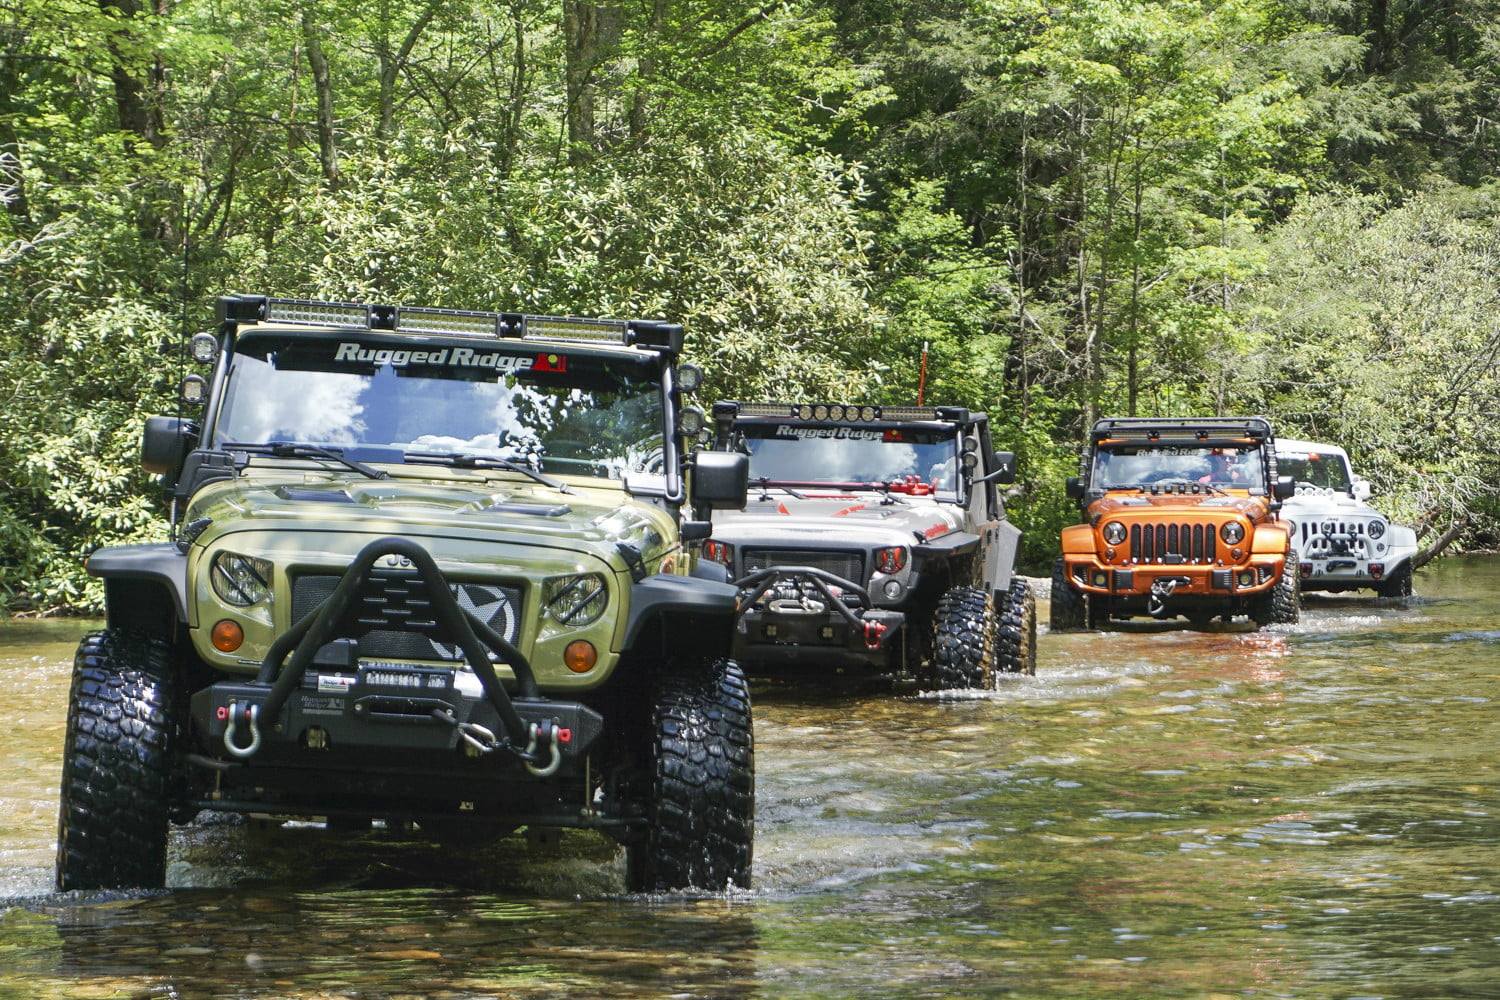 Four different colored Jeep Wrangler Unlimiteds driving up a riverbed